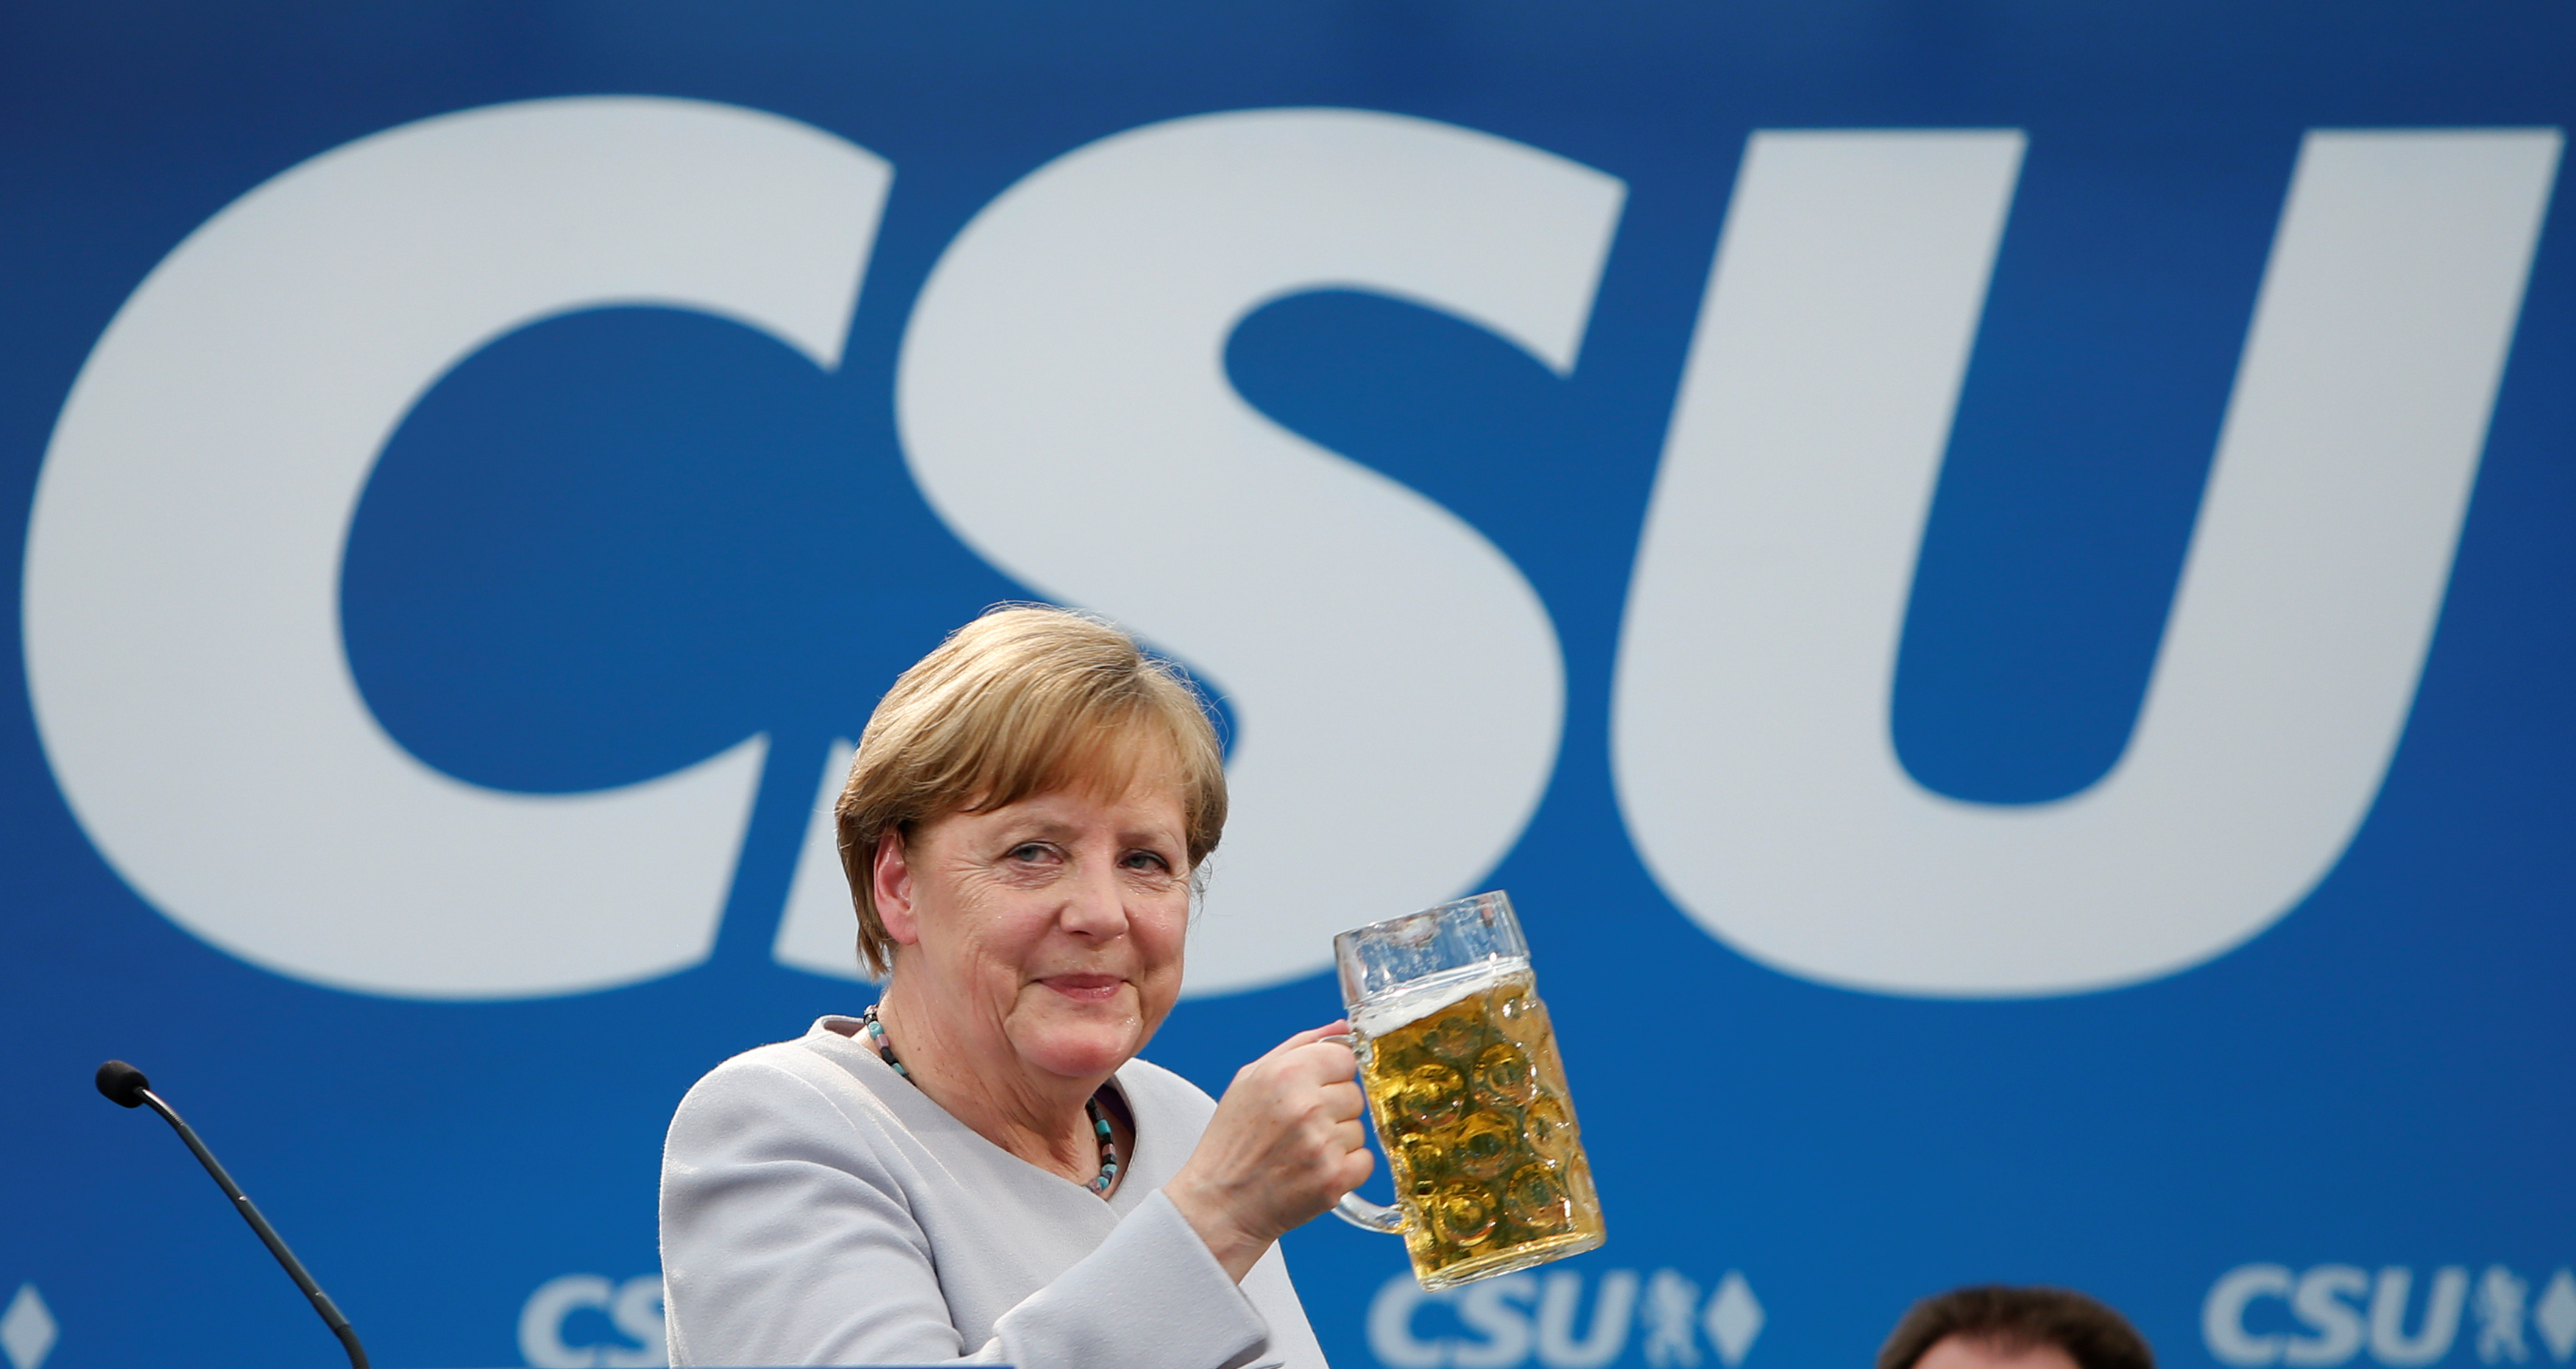 FILE PHOTO: German Chancellor and head of the Christian Democratic Union (CDU) Angela Merkel toasts during the Trudering festival in Munich, Germany, May 28, 2017.    REUTERS/Michaela Rehle/File Photo - RTX382TJ